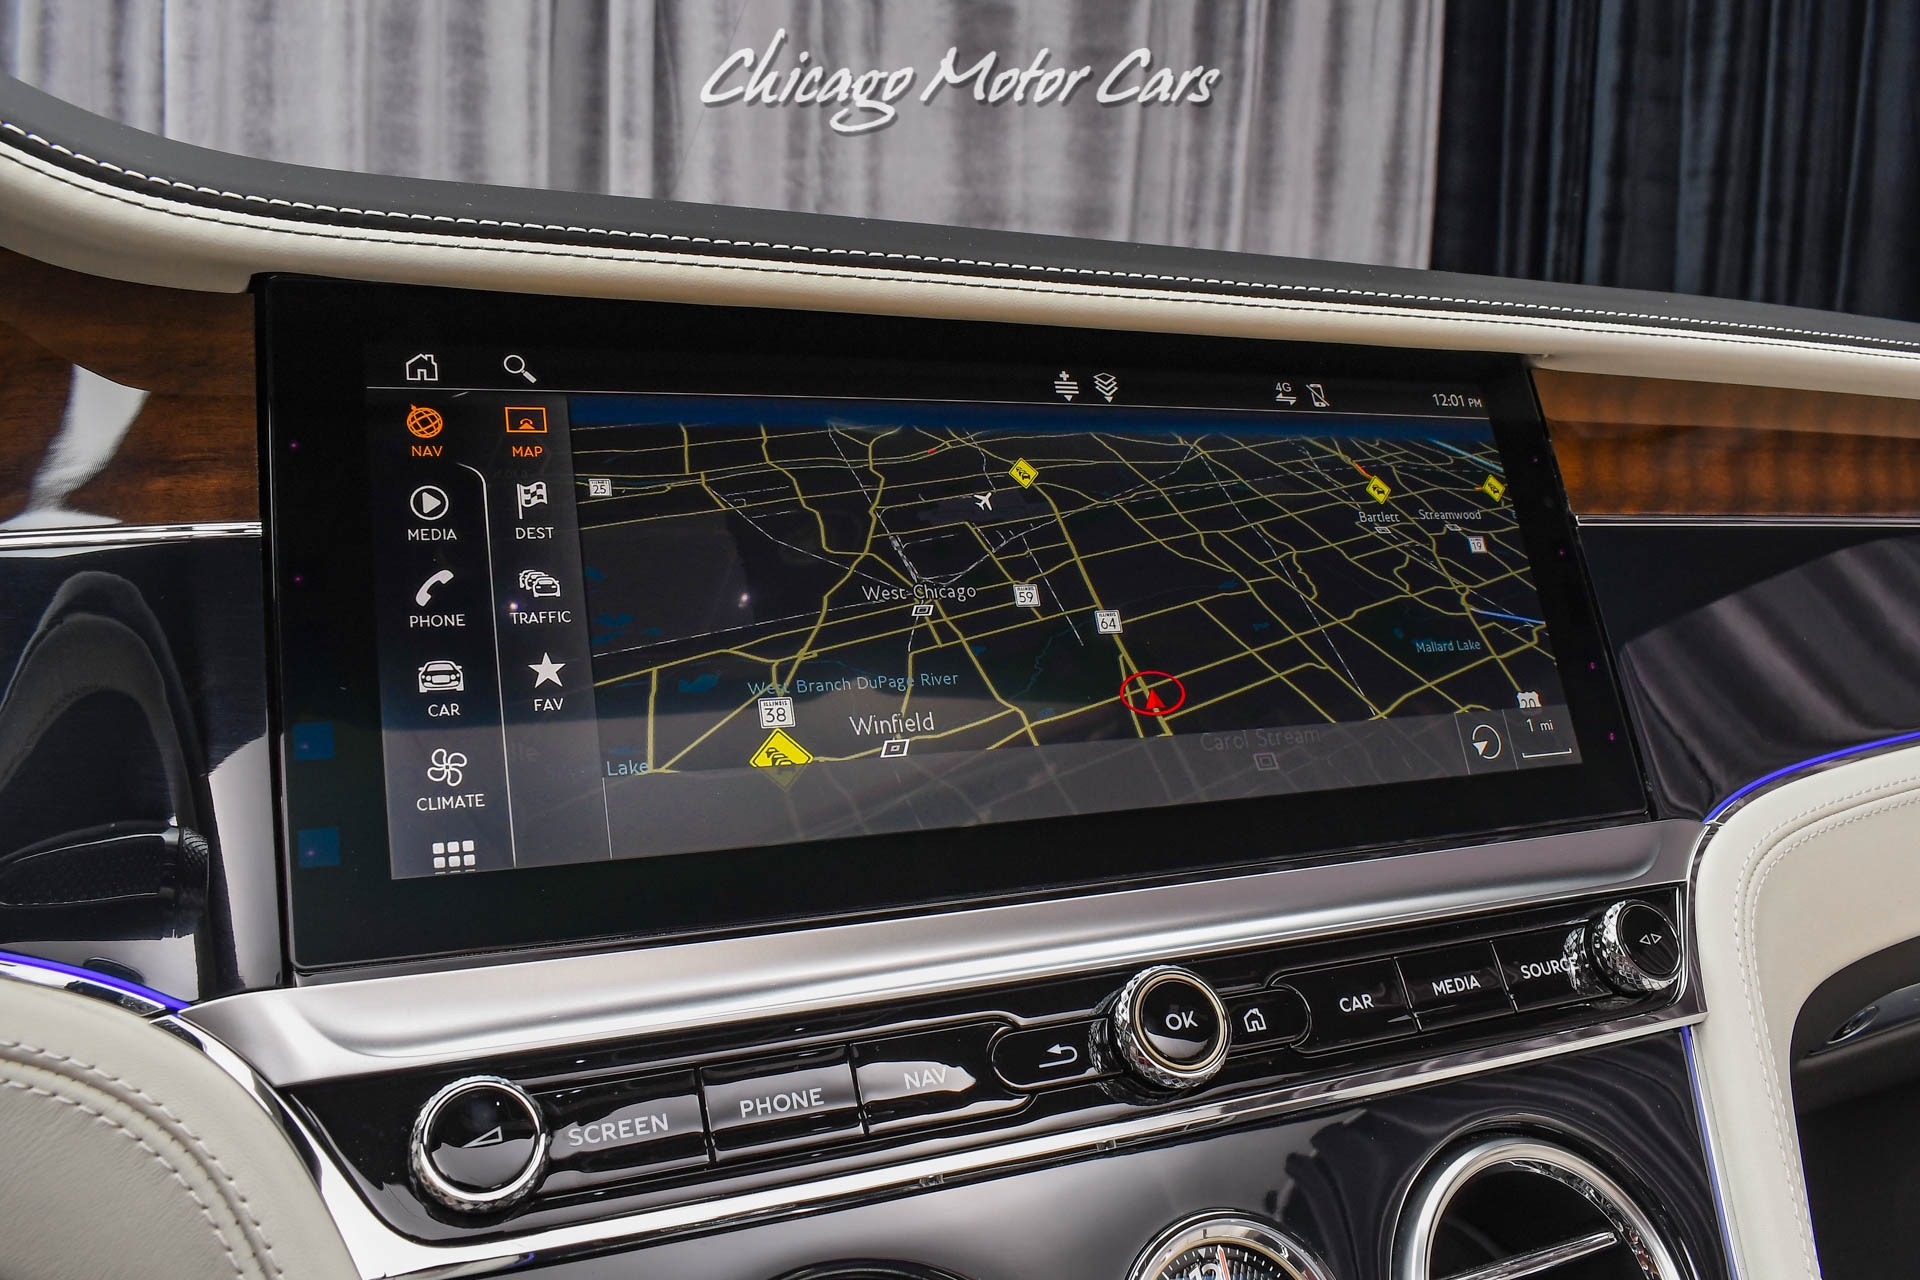 Used-2020-Bentley-Continental-GT-V8-Convertible-FIRST-EDITION-NAIM-BENTLEY-AUDIO-3K-MILES-LOADED